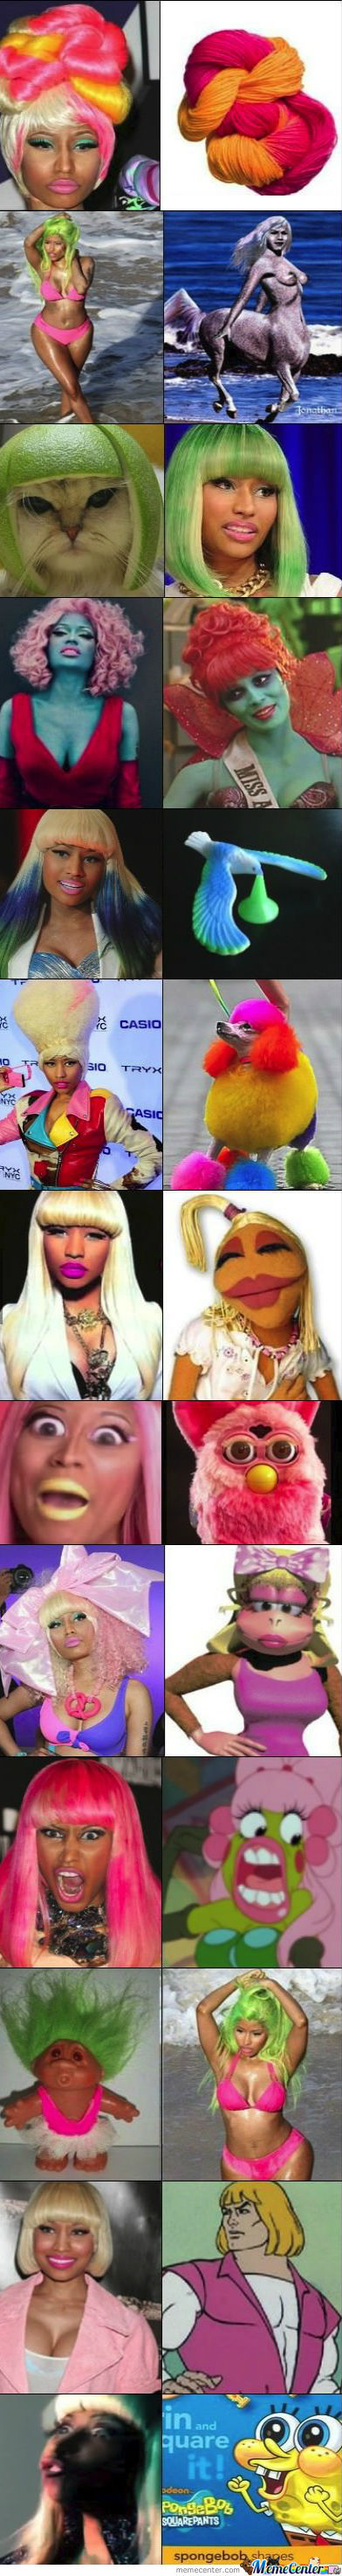 Nicki Minaj Compilation